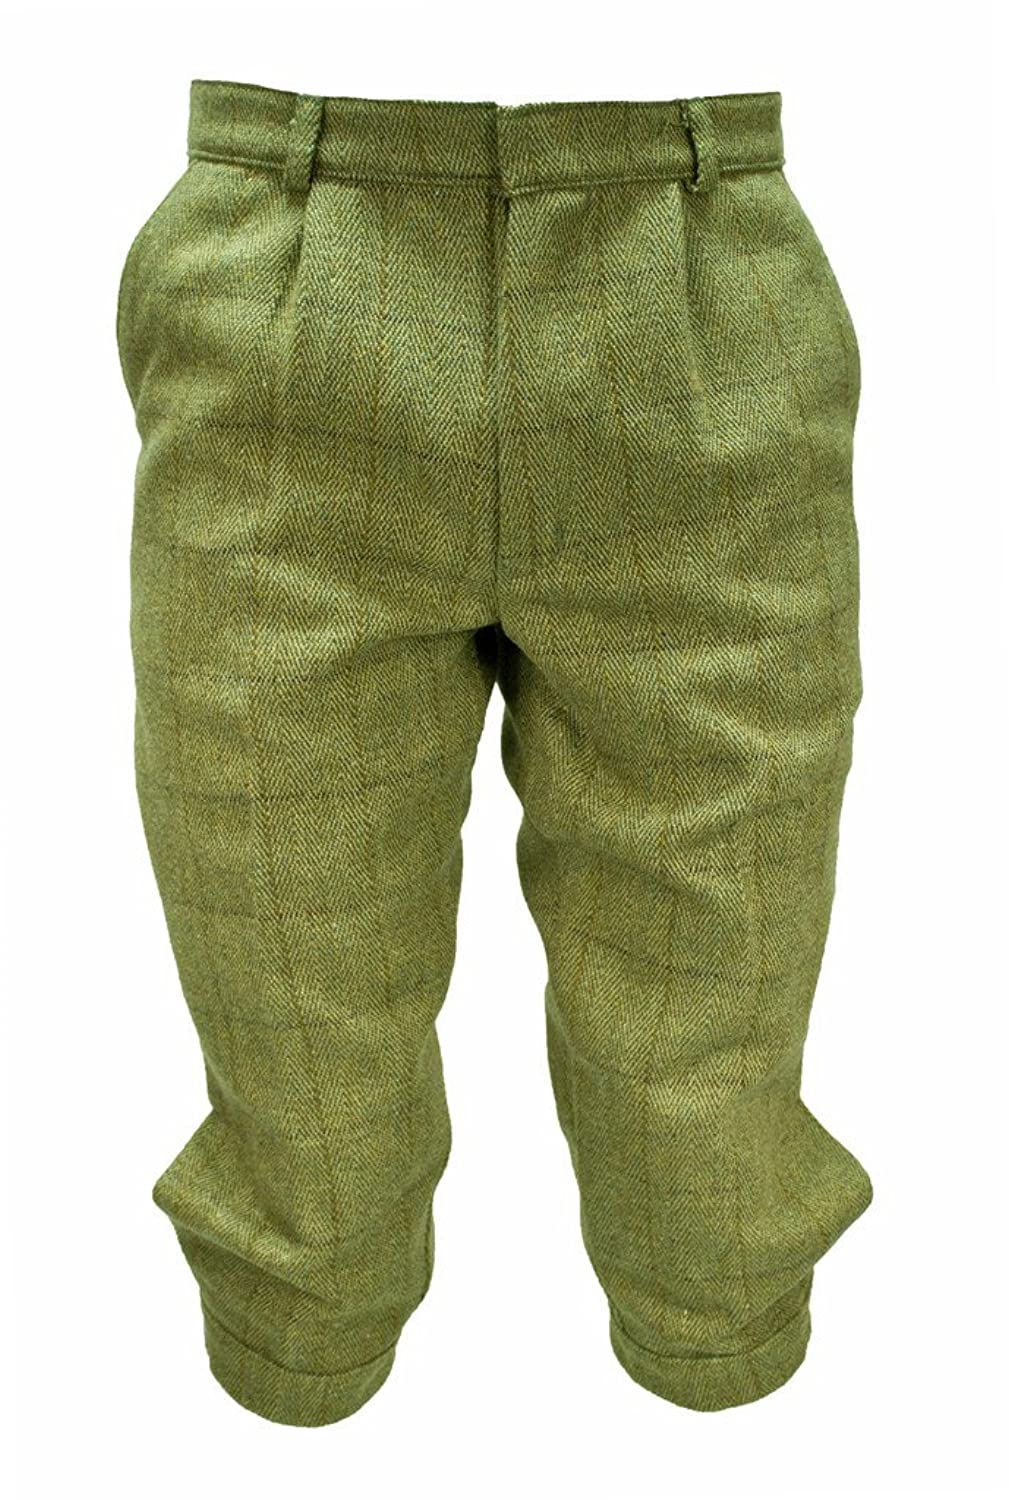 Vintage High Waisted Shorts, Sailor Shorts, Retro Shorts Tweed Breeks Trousers Pants Plus Fours by WWK / WorkWear King $54.95 AT vintagedancer.com